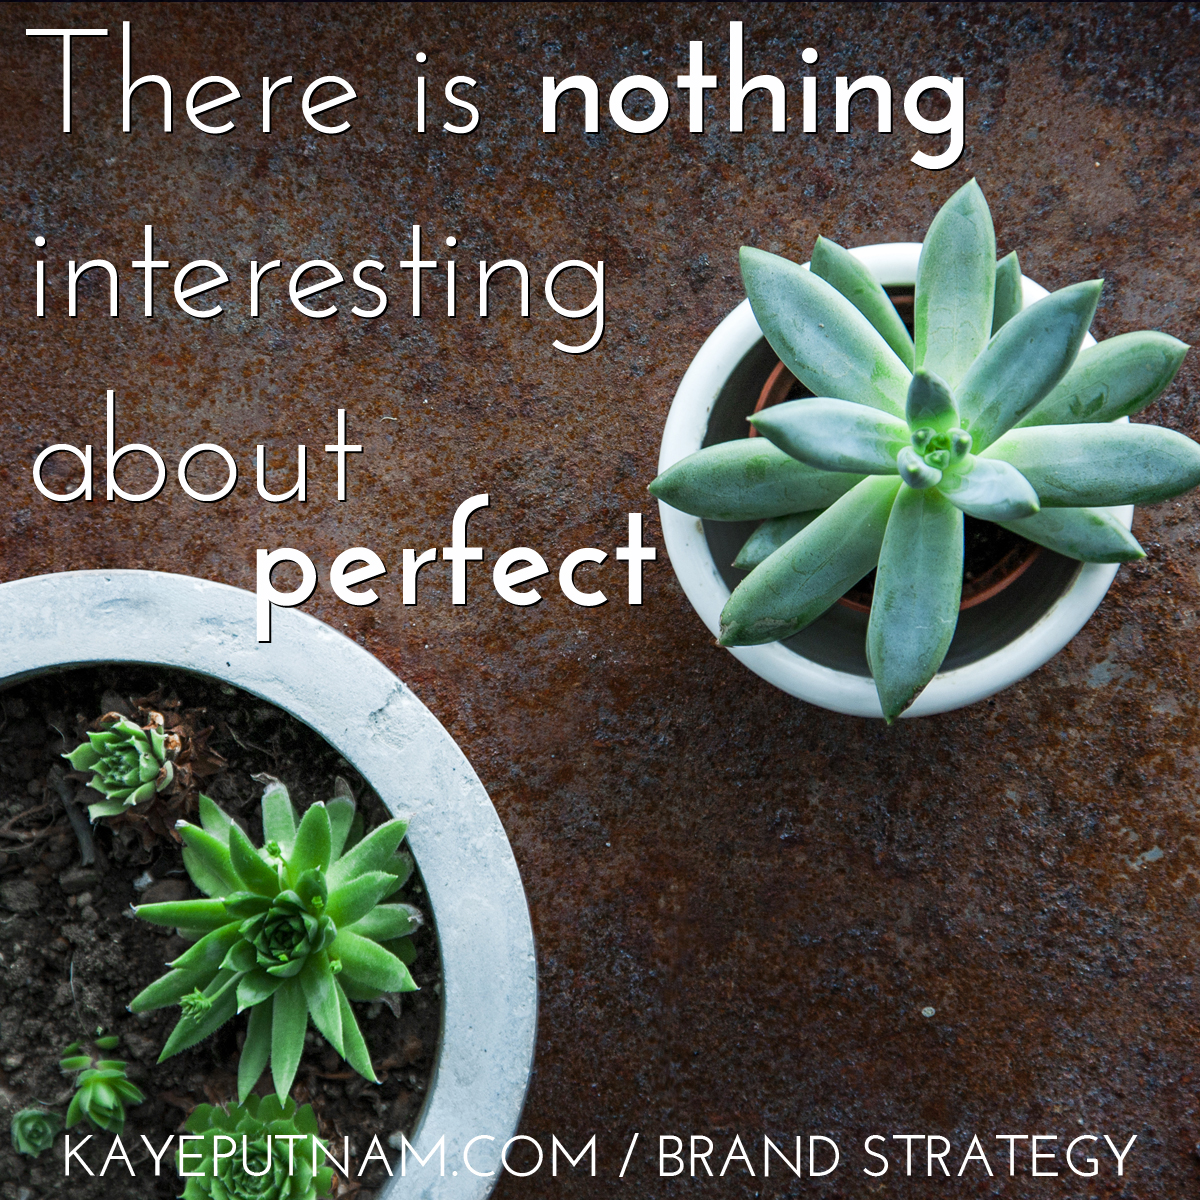 There's nothing interesting about perfect. #InDemandBrand